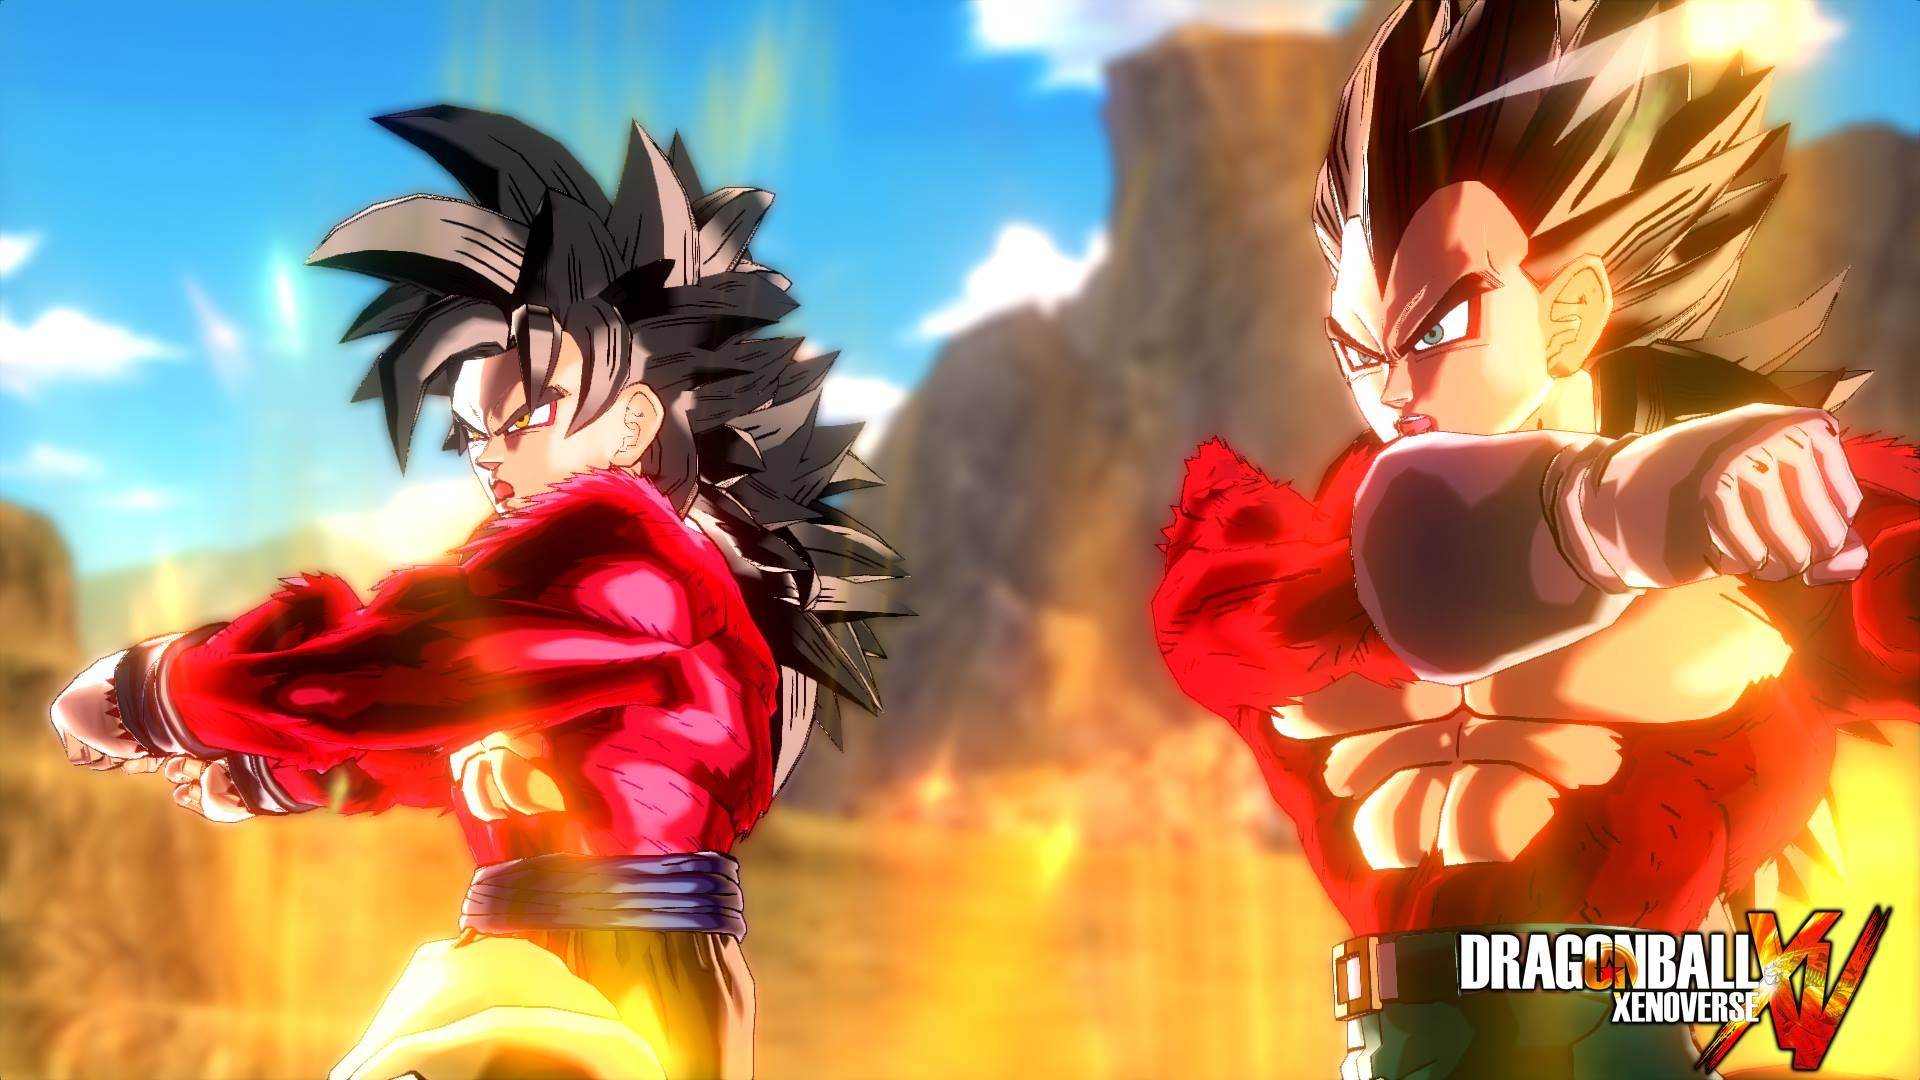 DRAGON BALL XENOVERSE 2 - Extra DLC Pack 4 on Steam